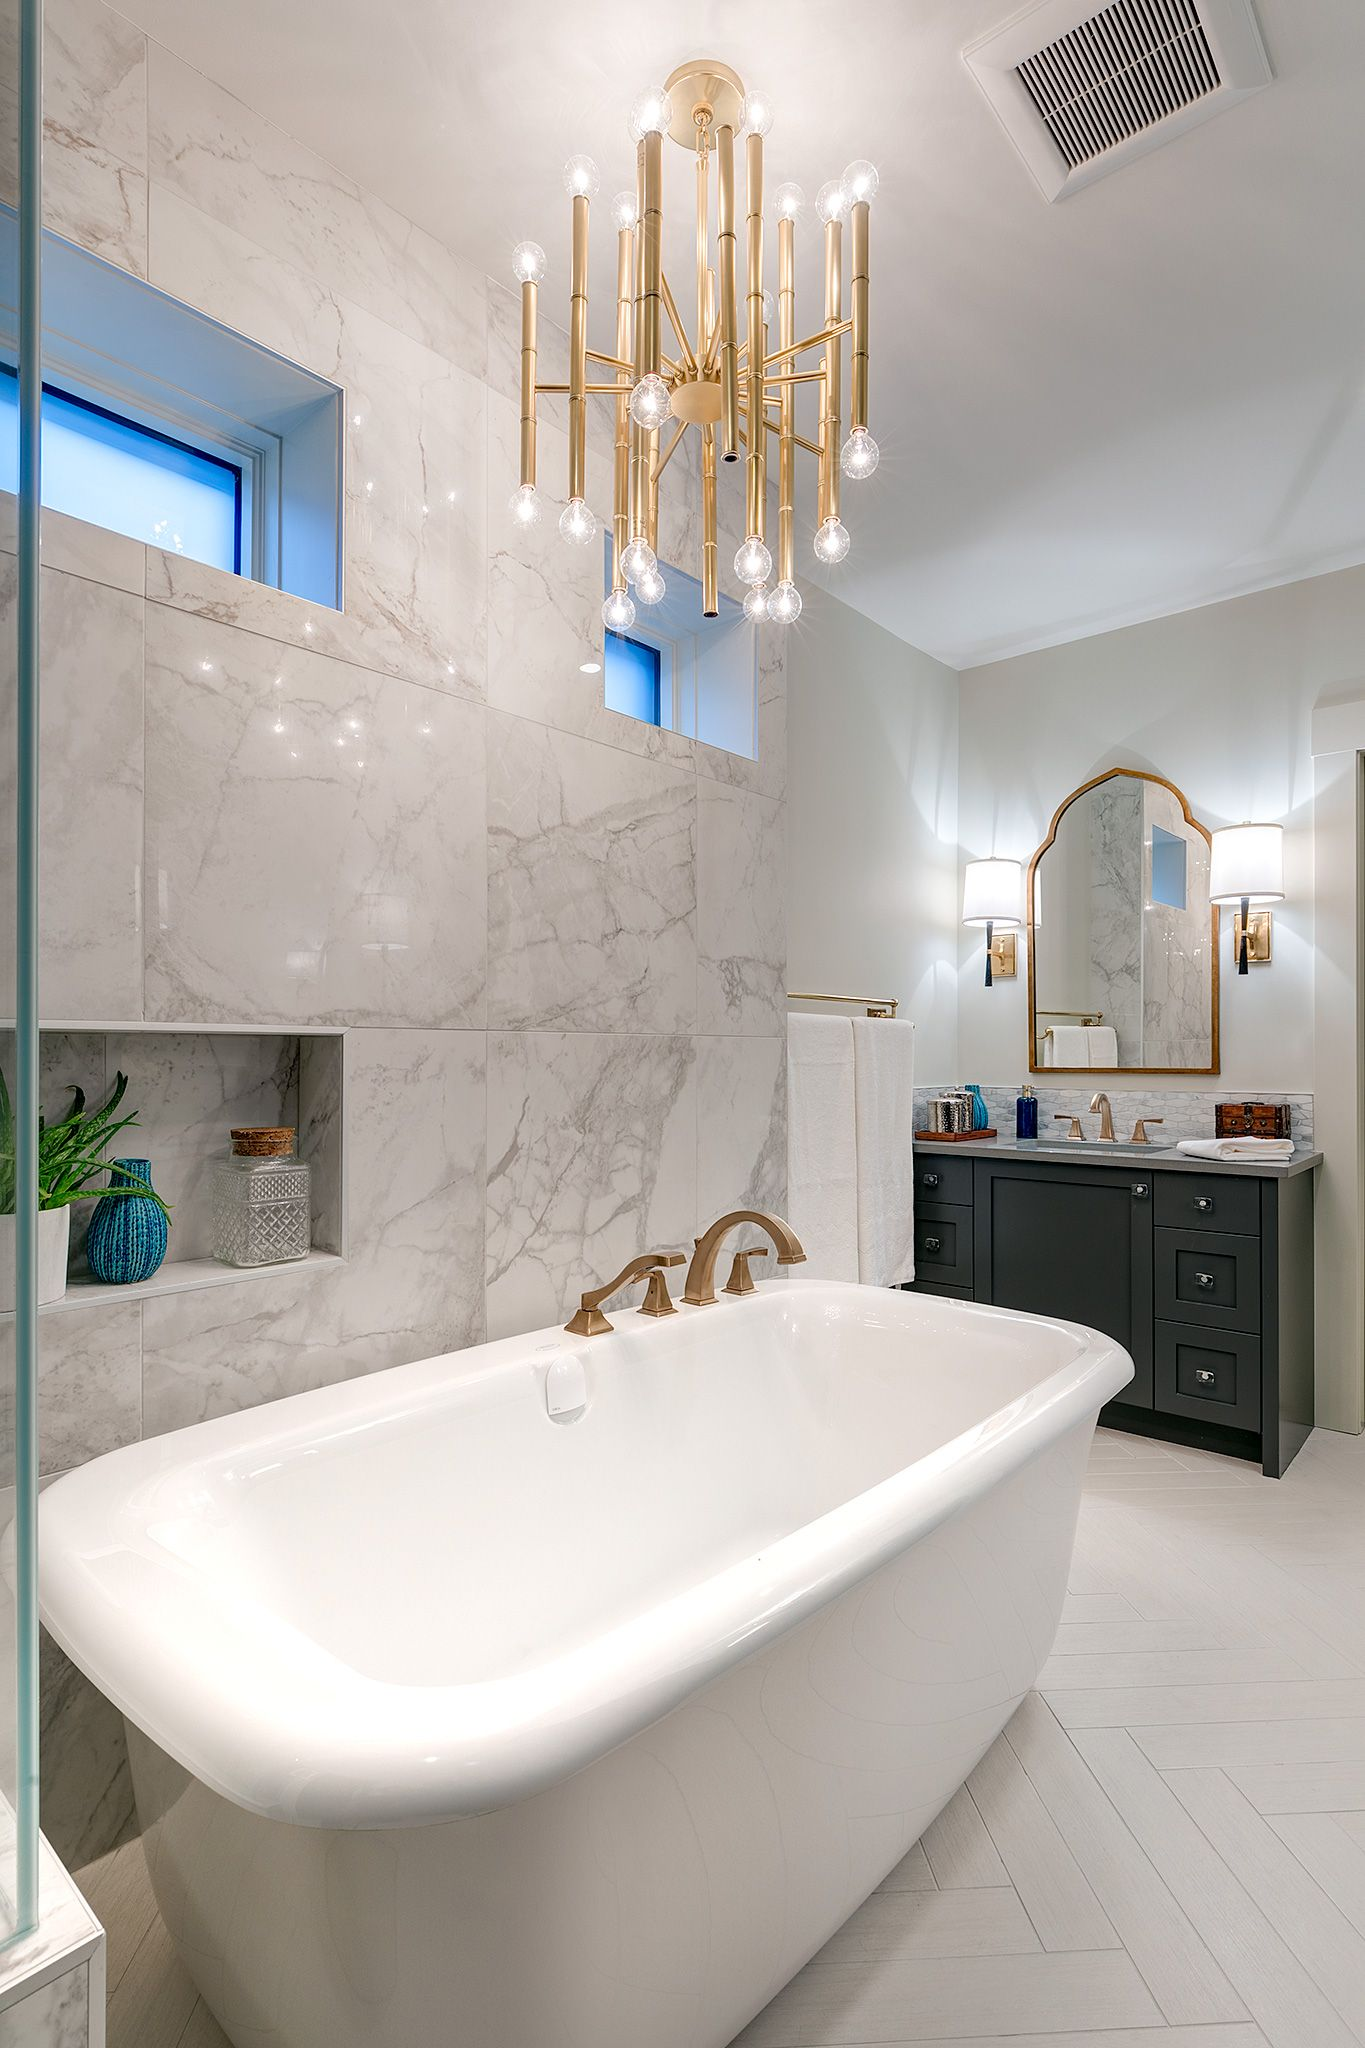 Ensuite Bathroom With Vintage Style Freestanding Bathtub And Brass Fixtures